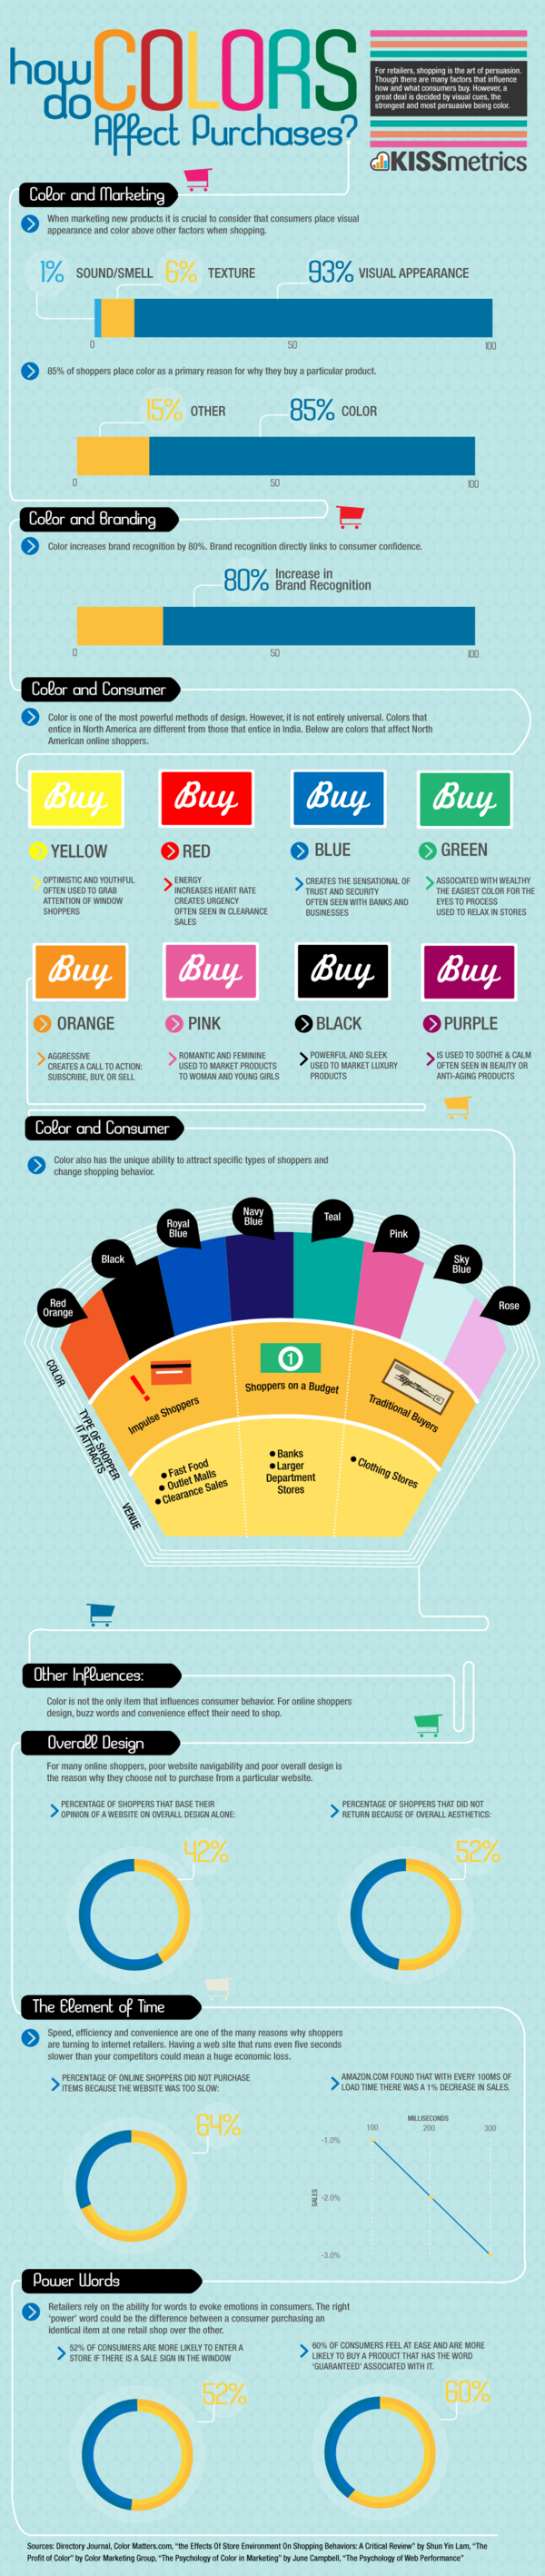 How do Colors Affect Purchases - infographic